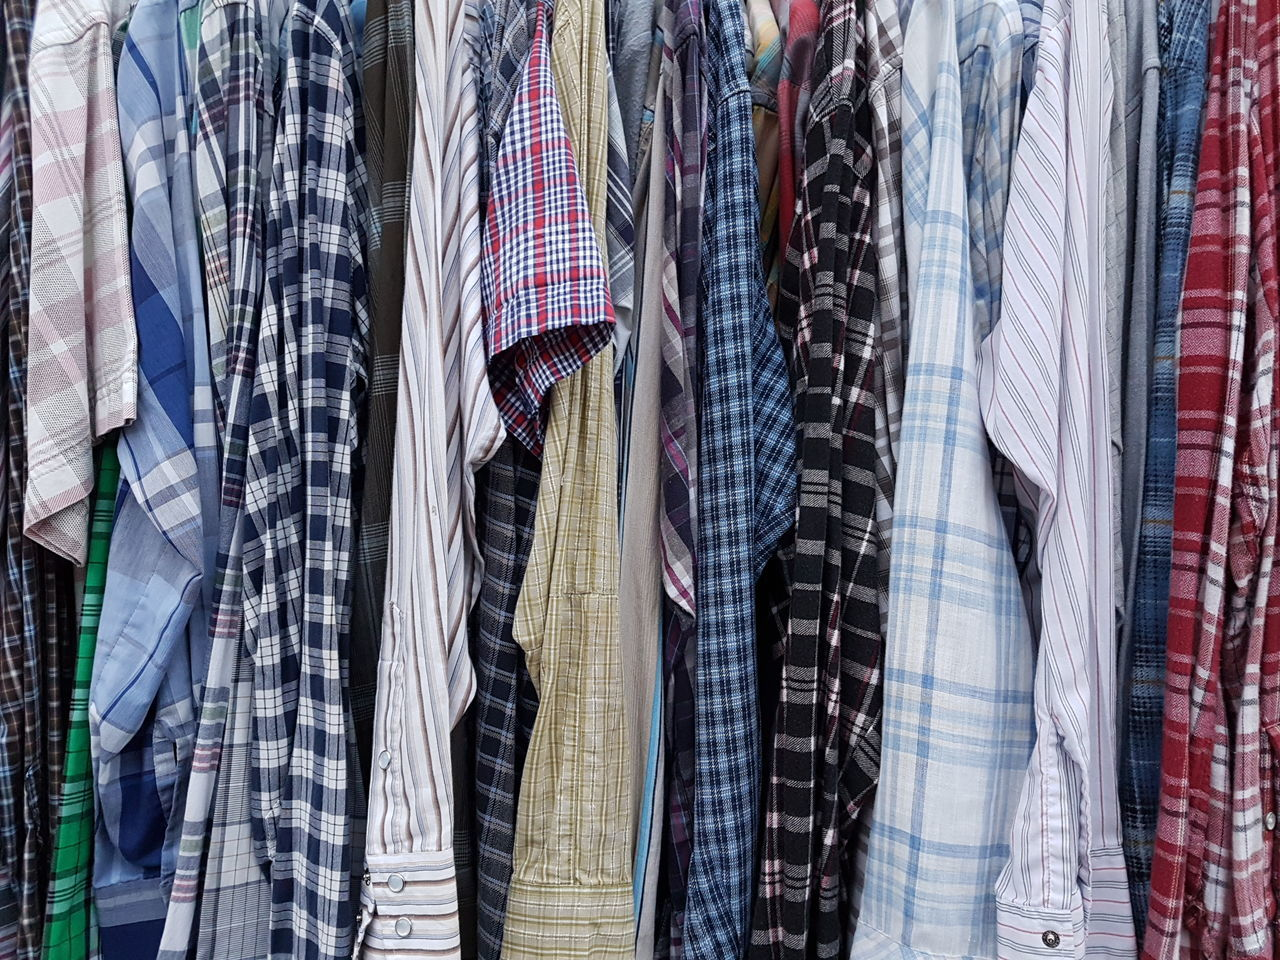 clothing, variation, checked pattern, hanging, retail, menswear, fashion, store, multi colored, backgrounds, indoors, no people, coathanger, close-up, day